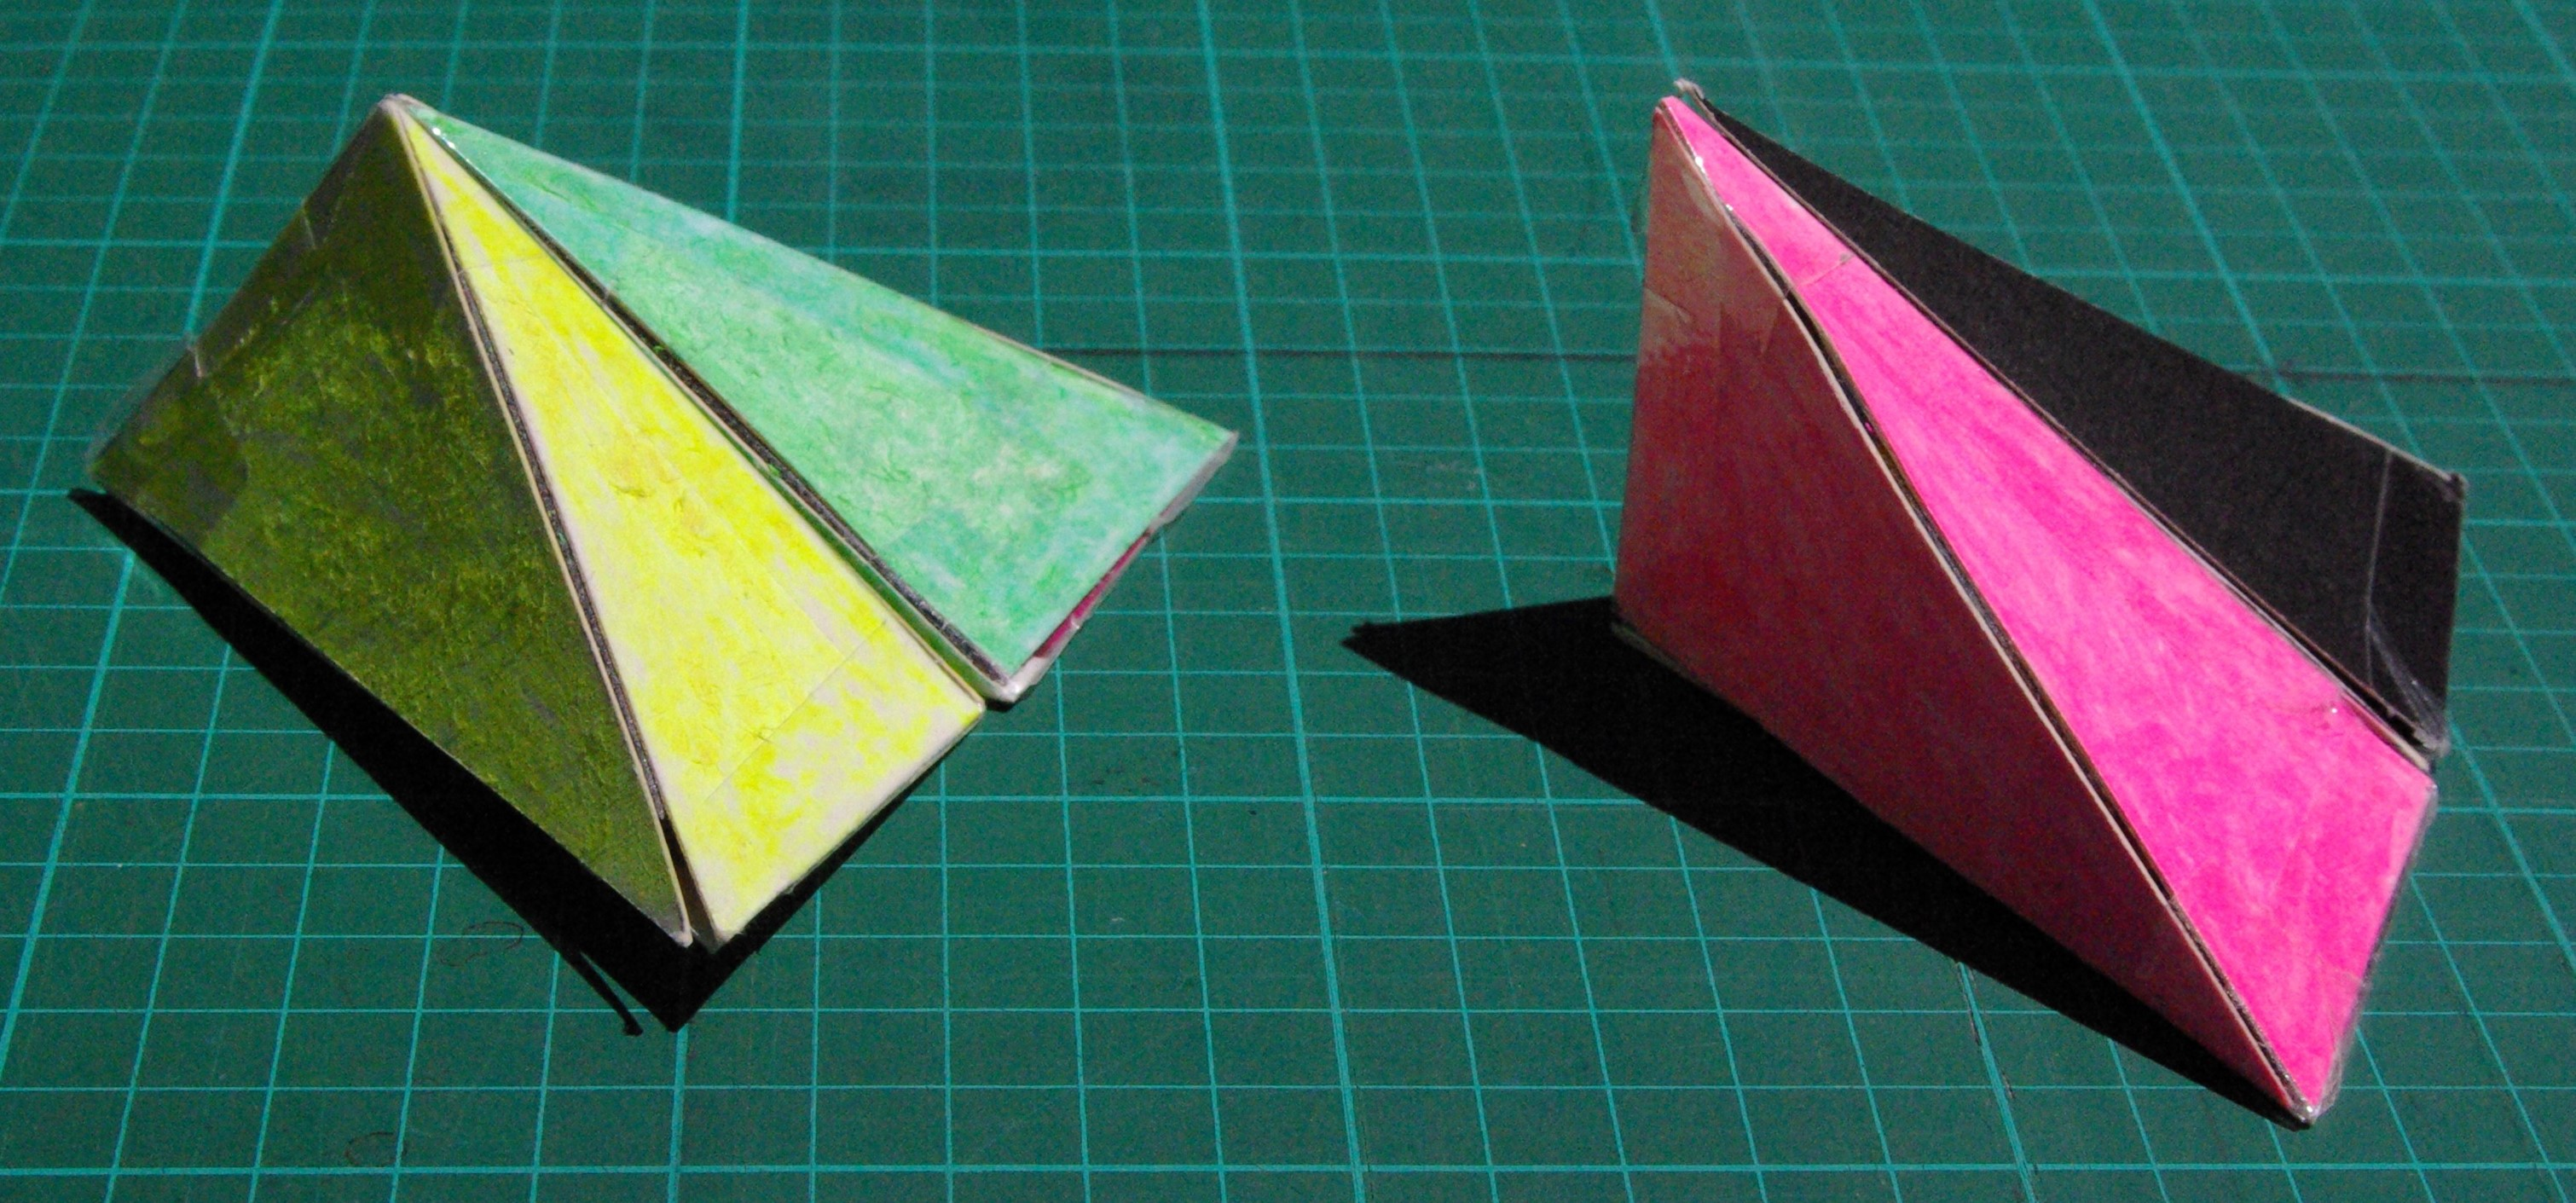 Picture of Second Way to Construct Four Congruent Non-regular Tetrahedra Part 1